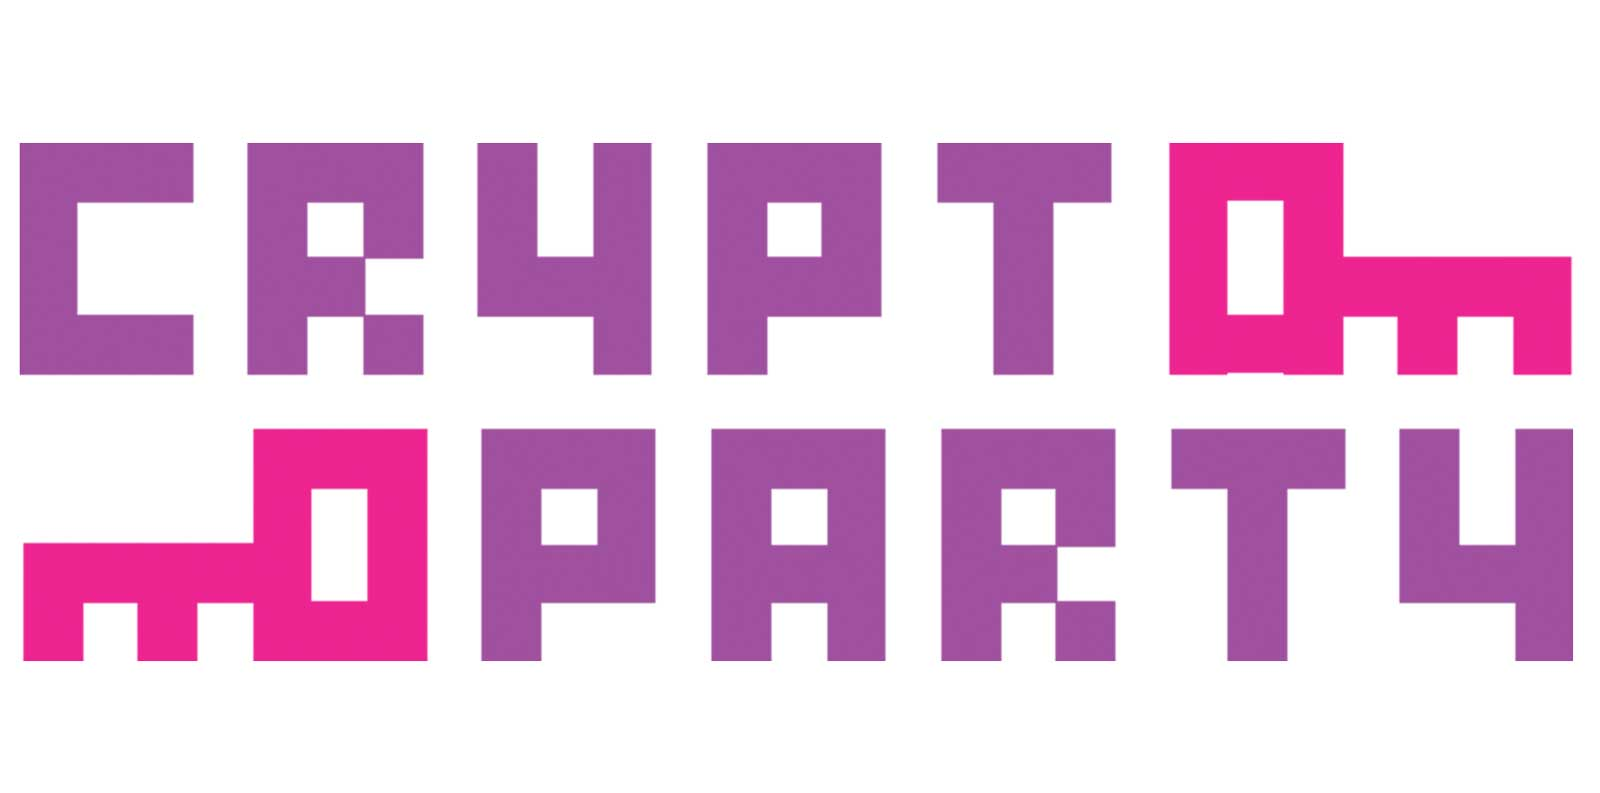 Cryptoparty radionica na SEEDIG-u